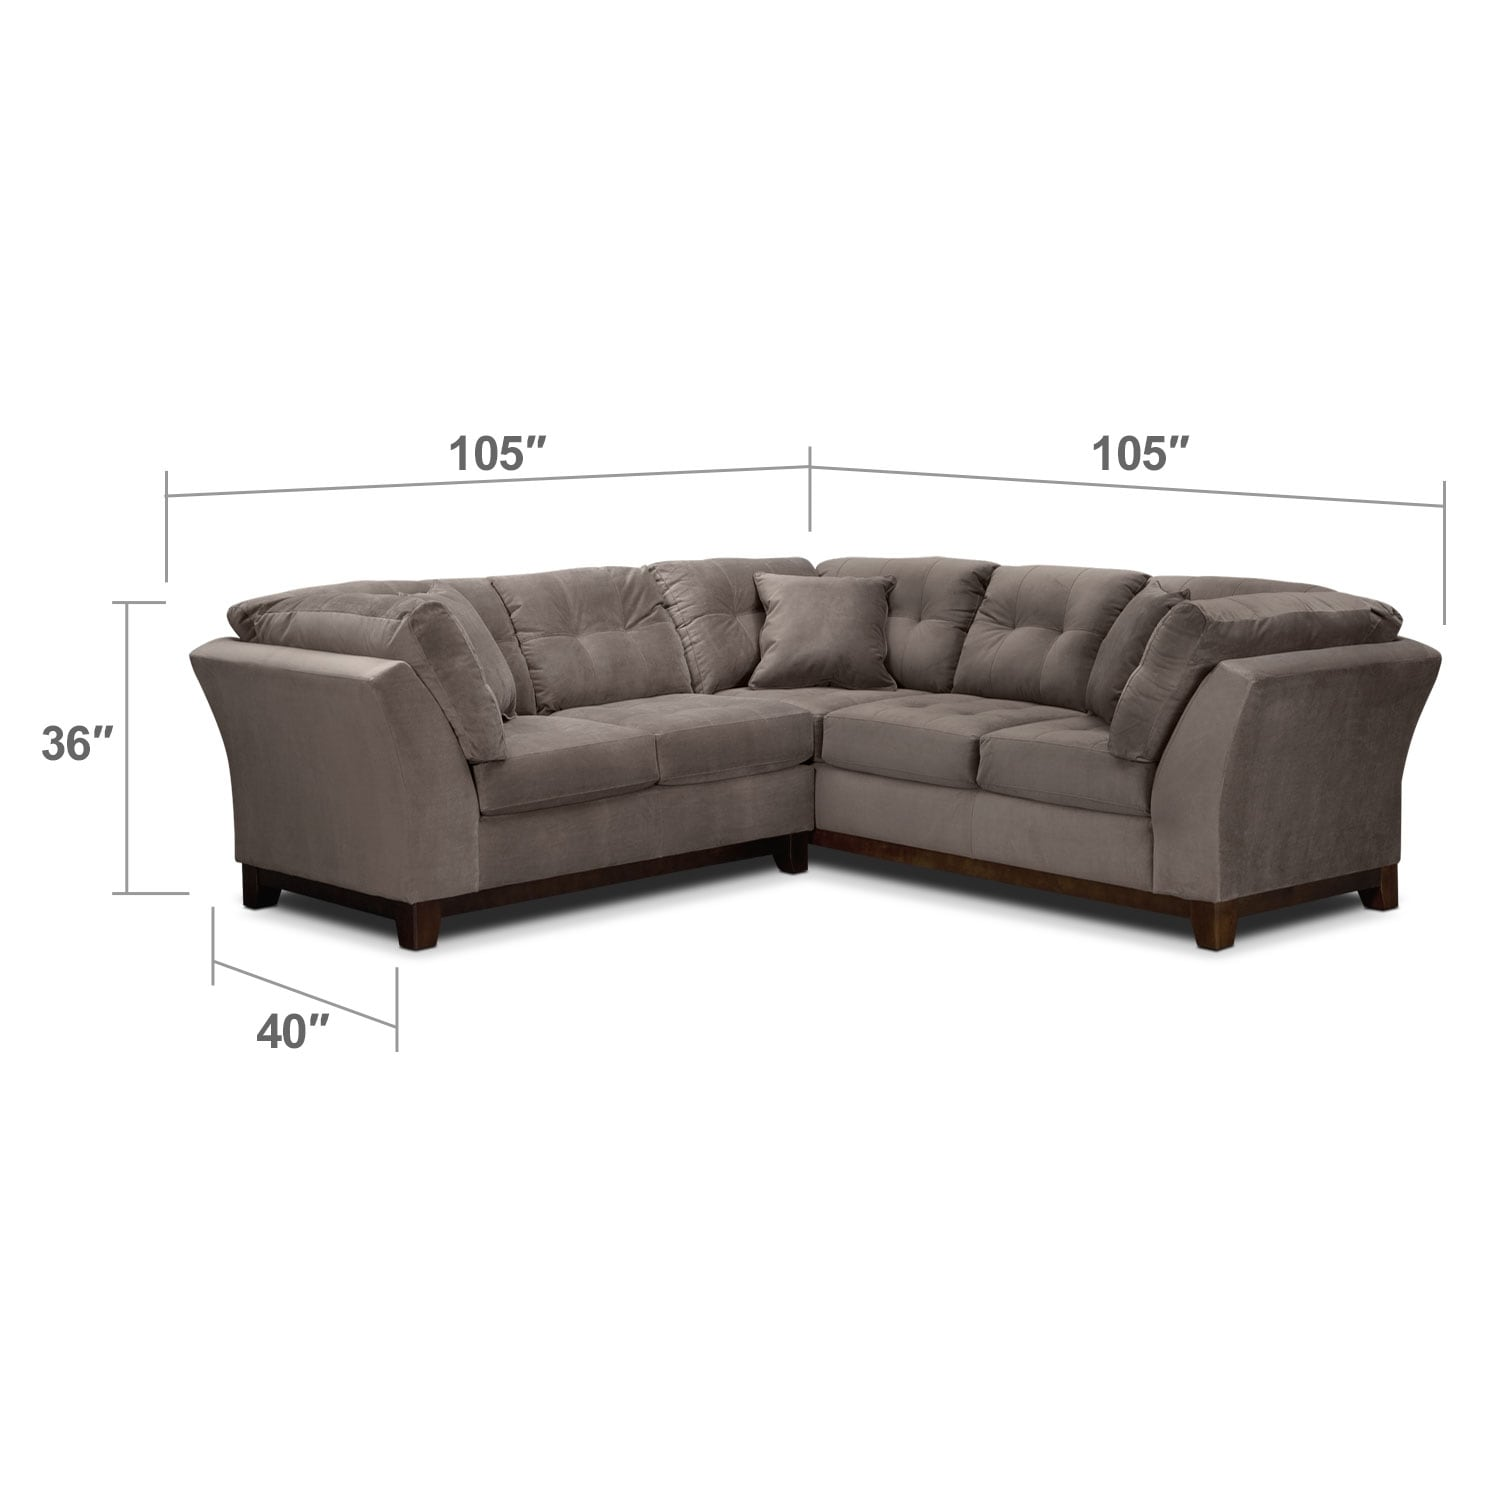 Living Room Furniture - Solace Gray II 2 Pc. Sectional (Alternate II)